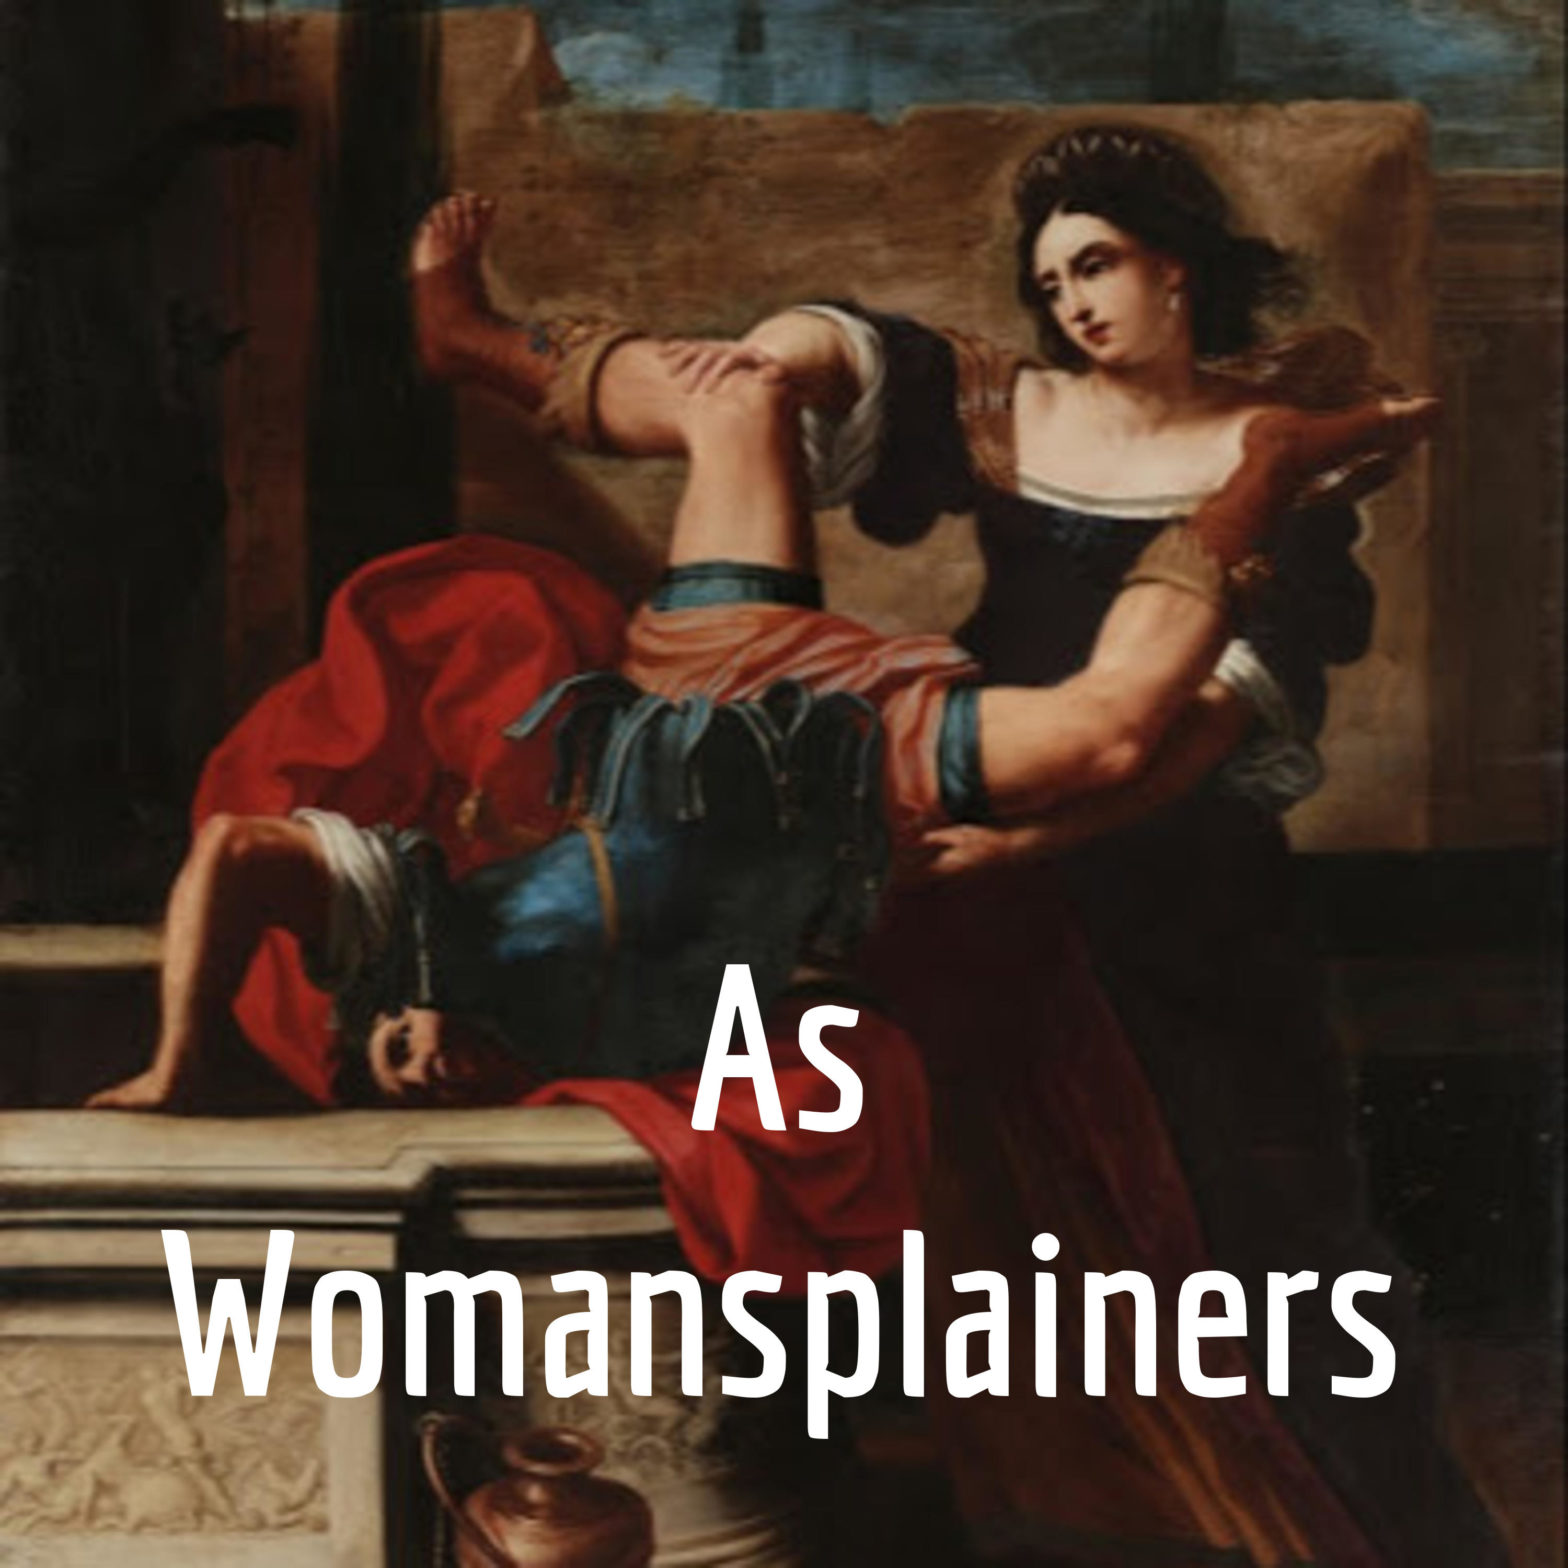 As Womansplainers